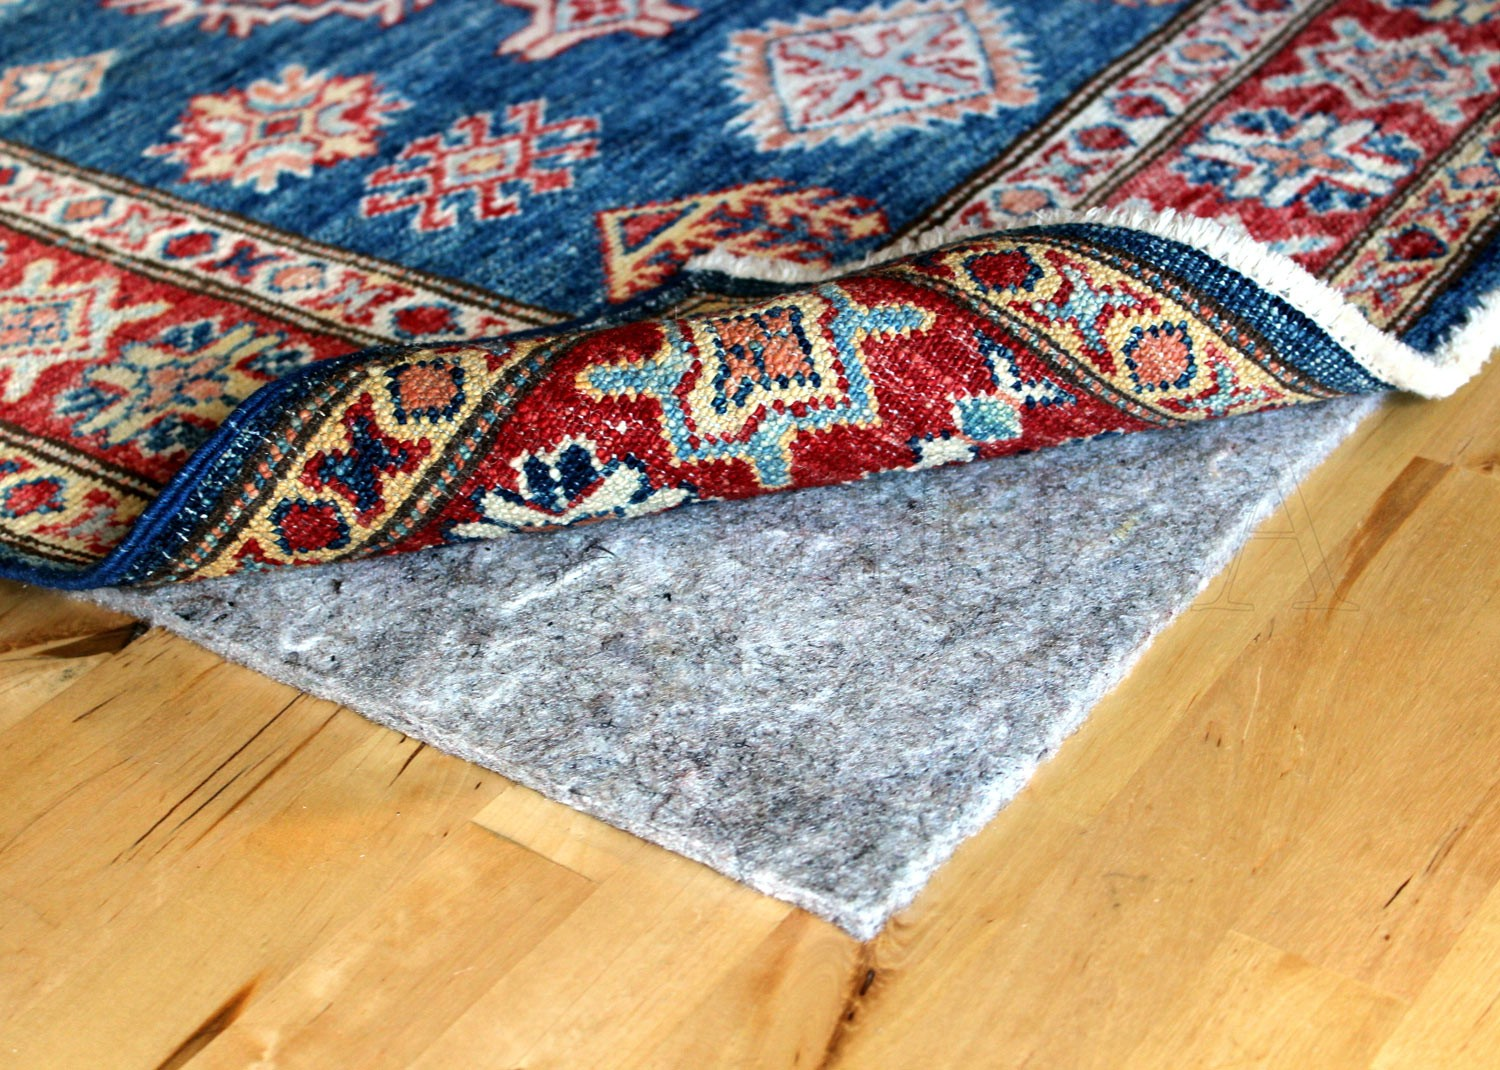 3 Recommendations For Best Rug Pad For Hardwood Floors